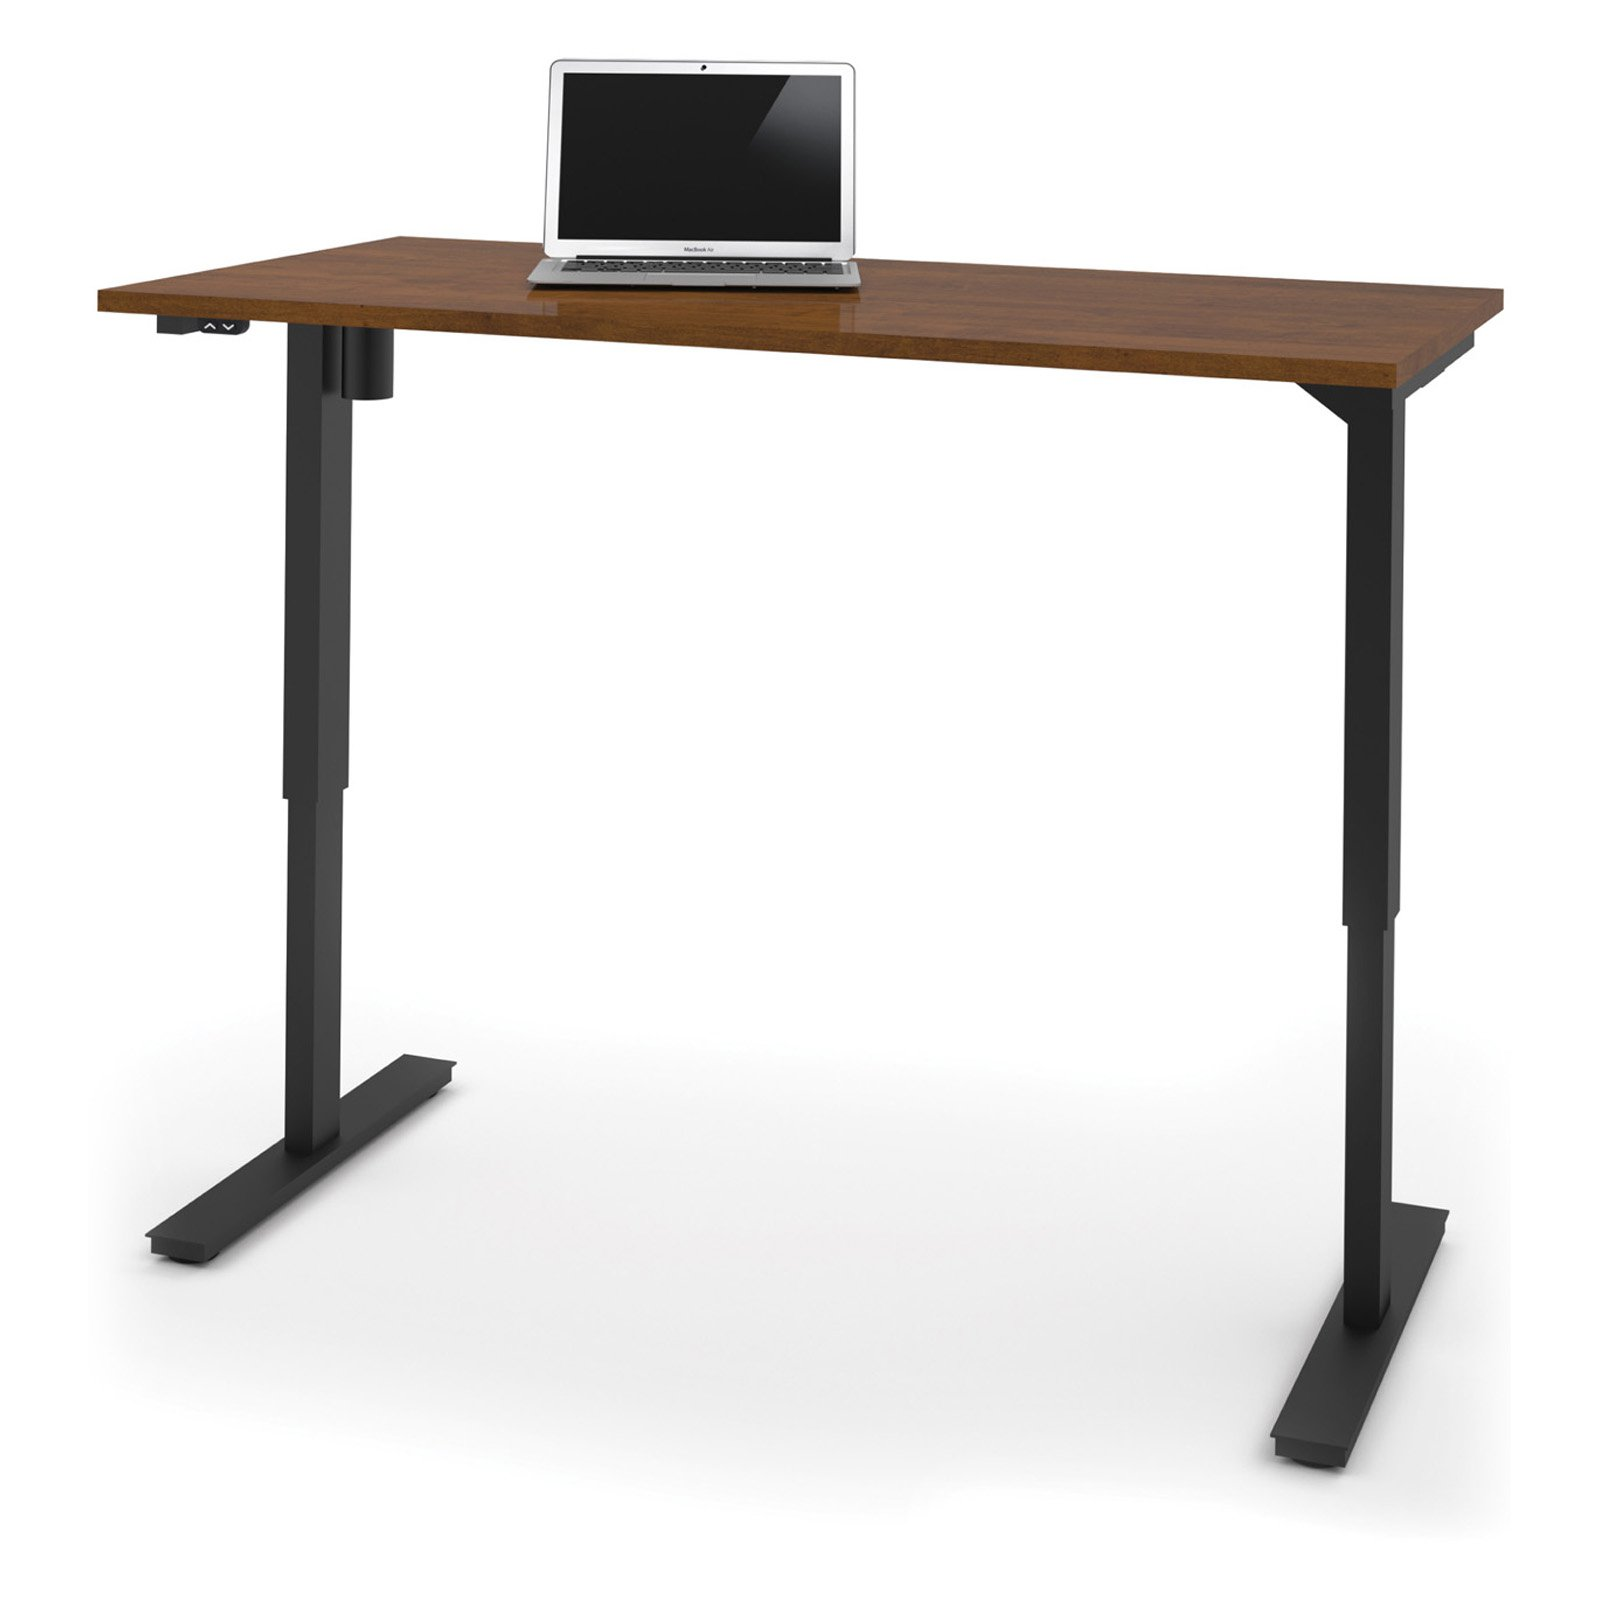 "Bestar 30"" x 60"" Electric Height adjustable table in Tuscany Brown by Bestar"